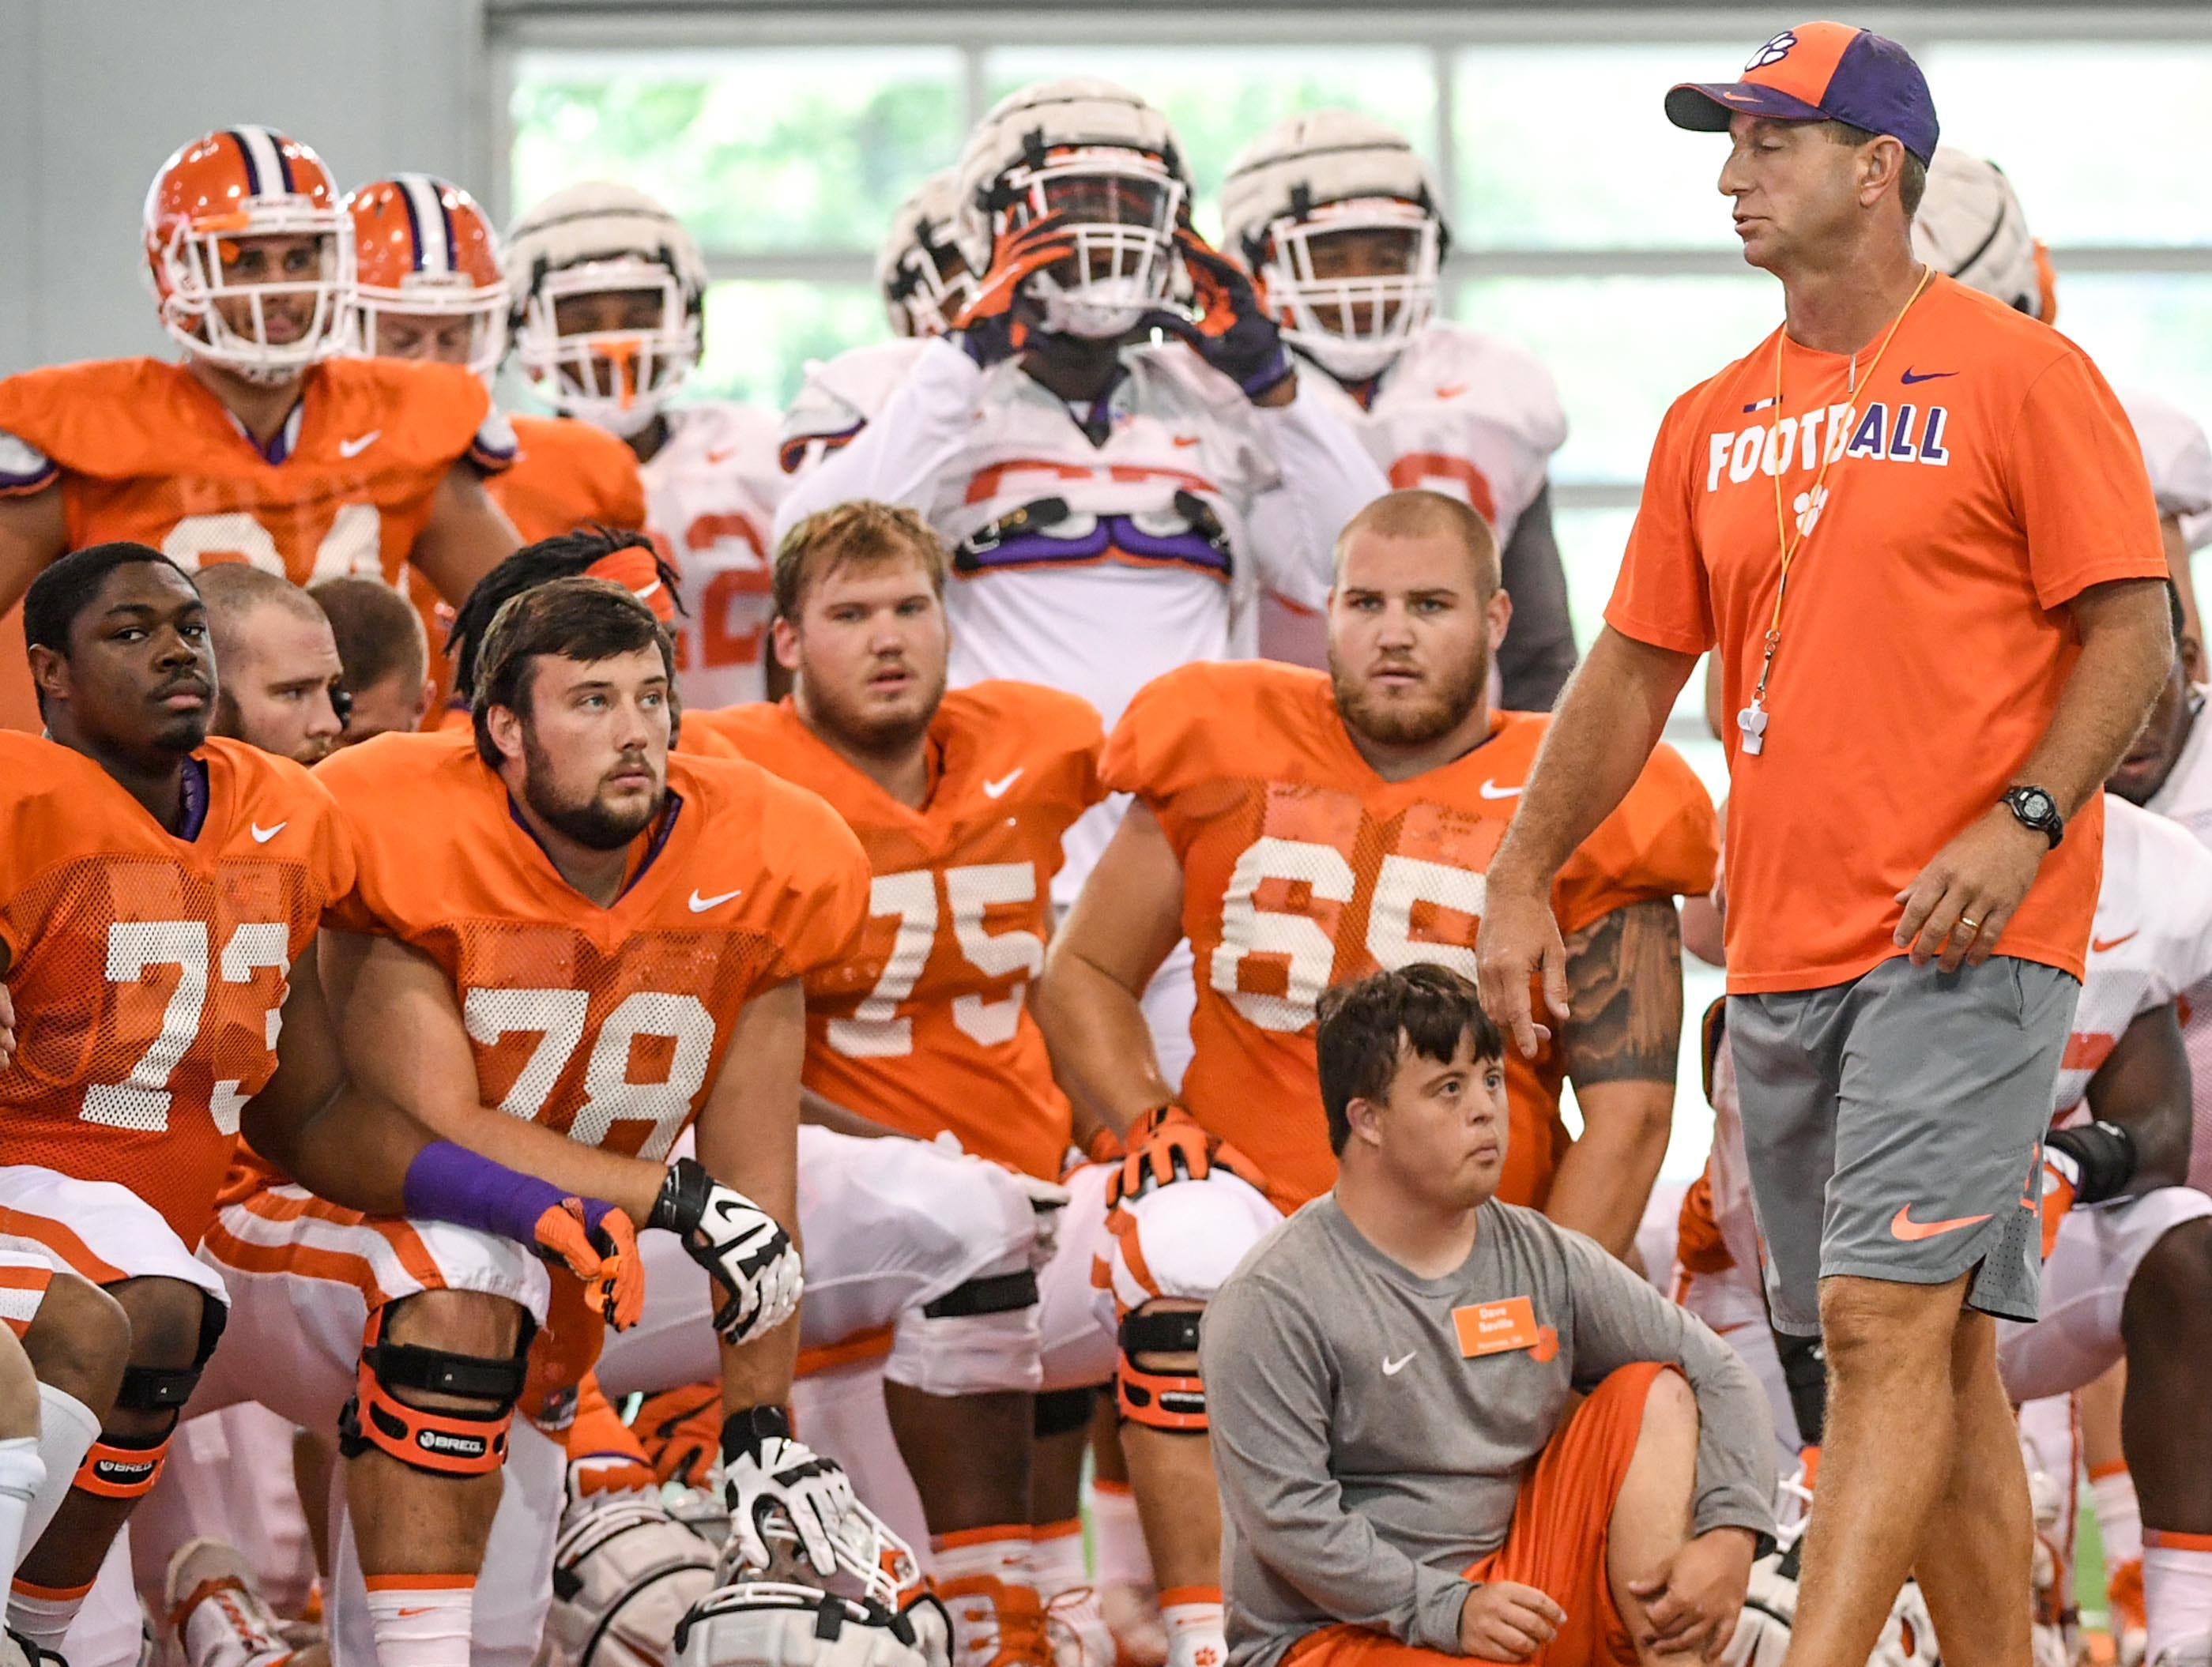 Offensive linemen, from left; Tremayne Anchrum (73), Chandler Reeves (78), Mitch Hyatt (75), and Matt Bockhorst (65) listen to head coach Dabo Swinney during fall practice in Clemson on Wednesday.